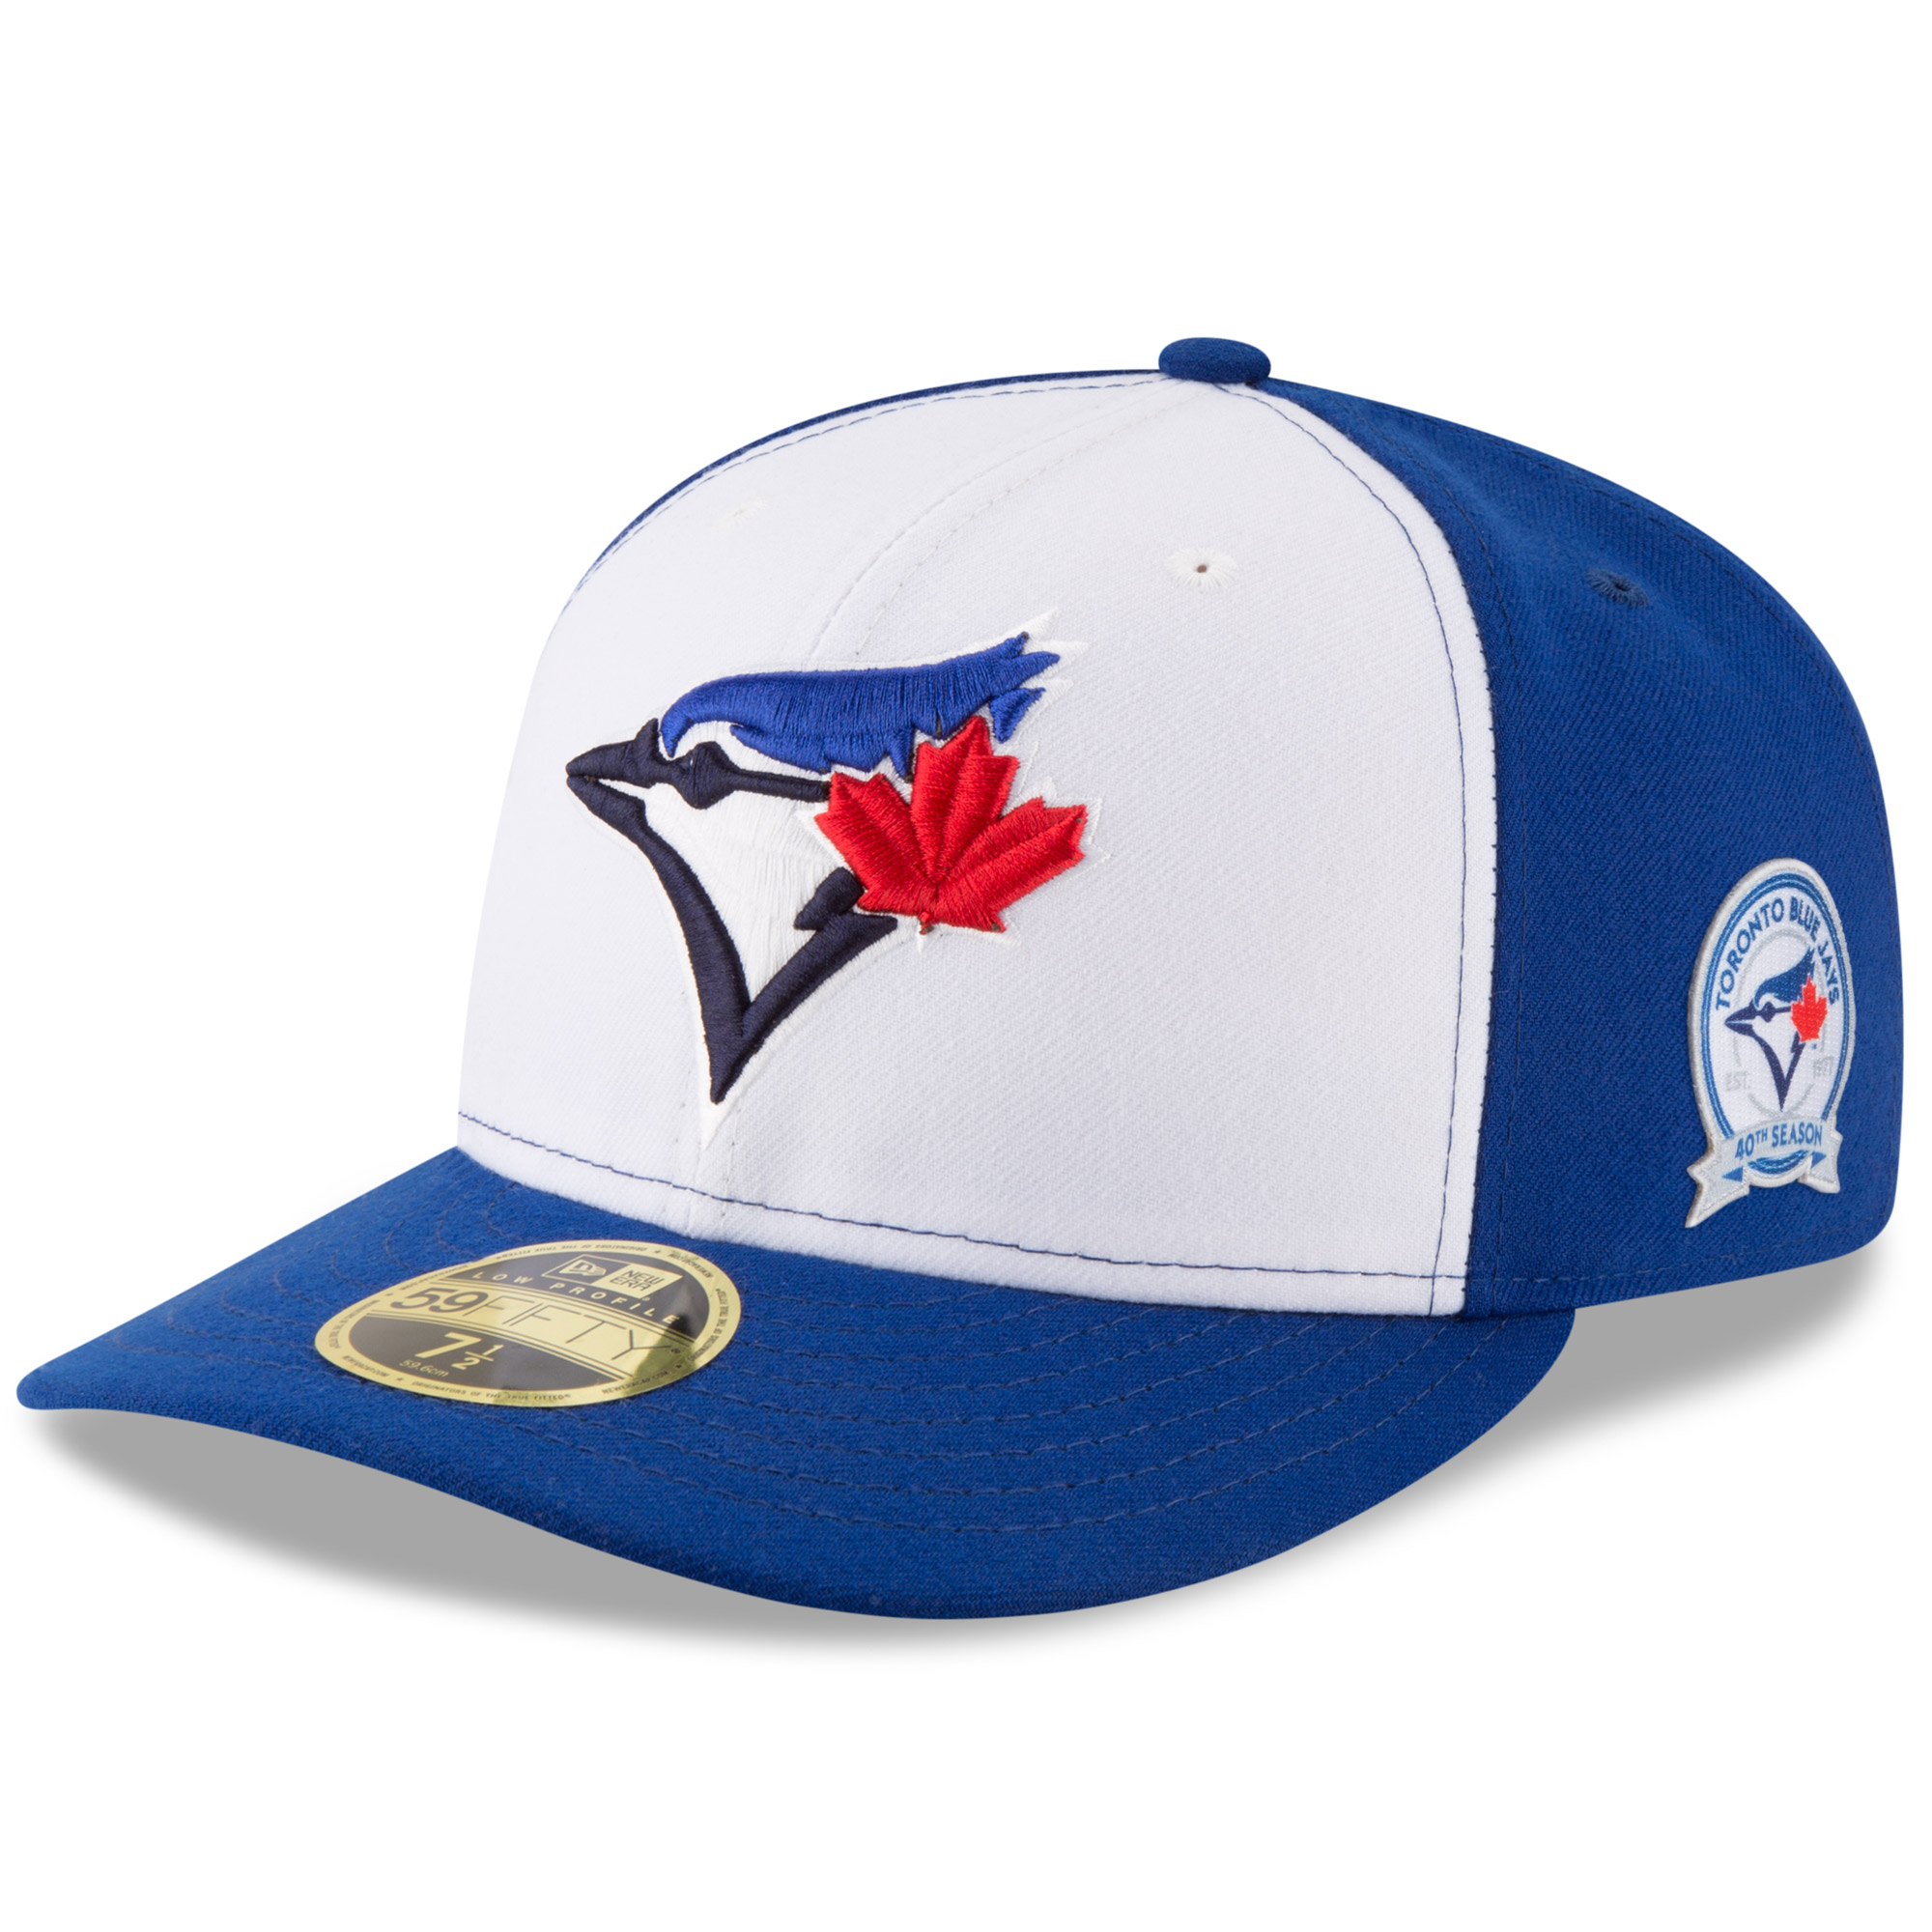 Toronto Blue Jays New Era 40th Anniversary Low Profile 59FIFTY Fitted Hat - White/Blue